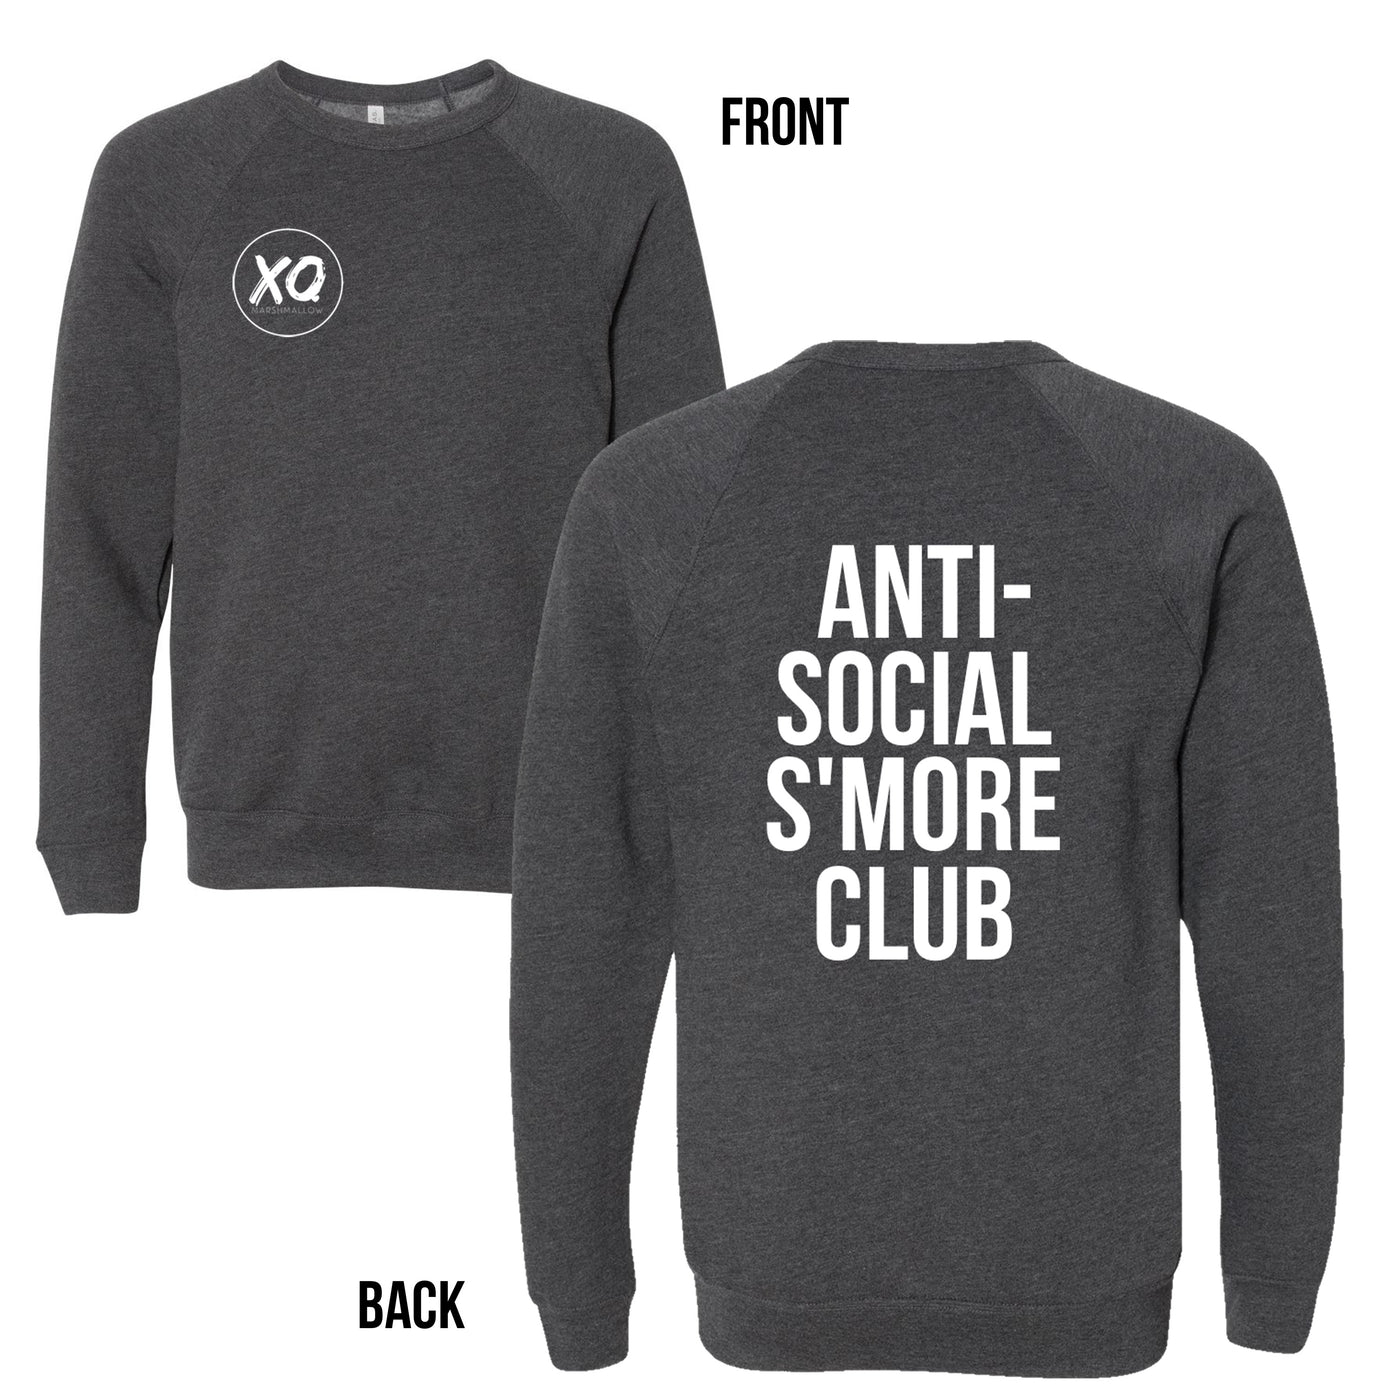 products/AntiSocialDonationSweater.jpg